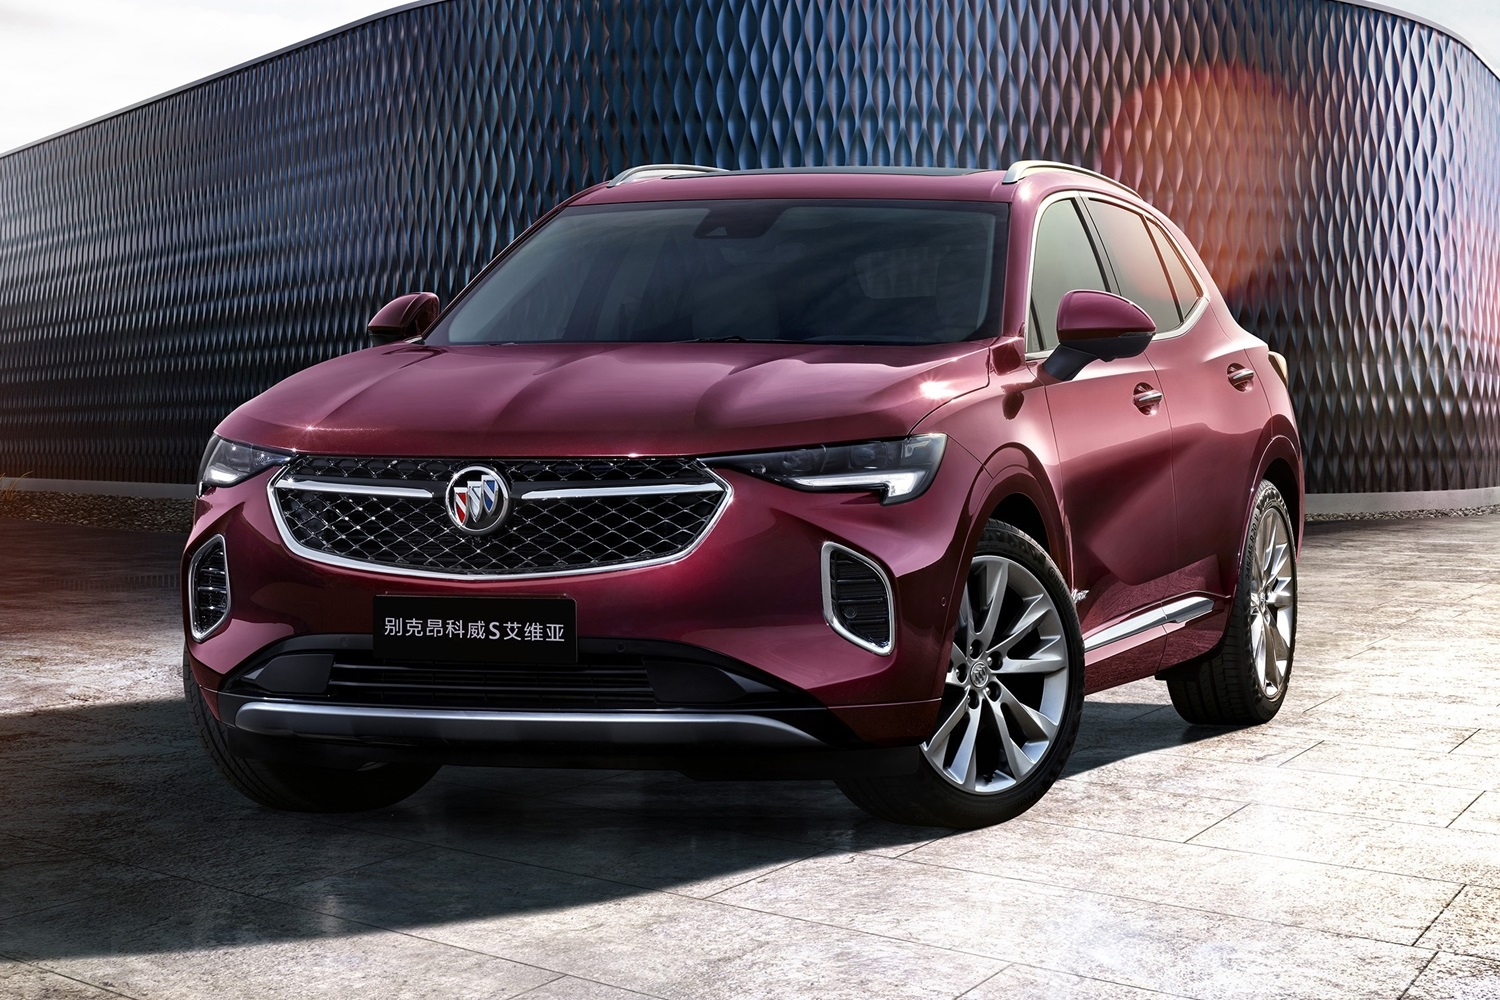 Range-Topping 2021 Buick Envision Avenir Revealed | Gm Authority New 2021 Buick Enclave Avenir Awd Review, Accessories, Build